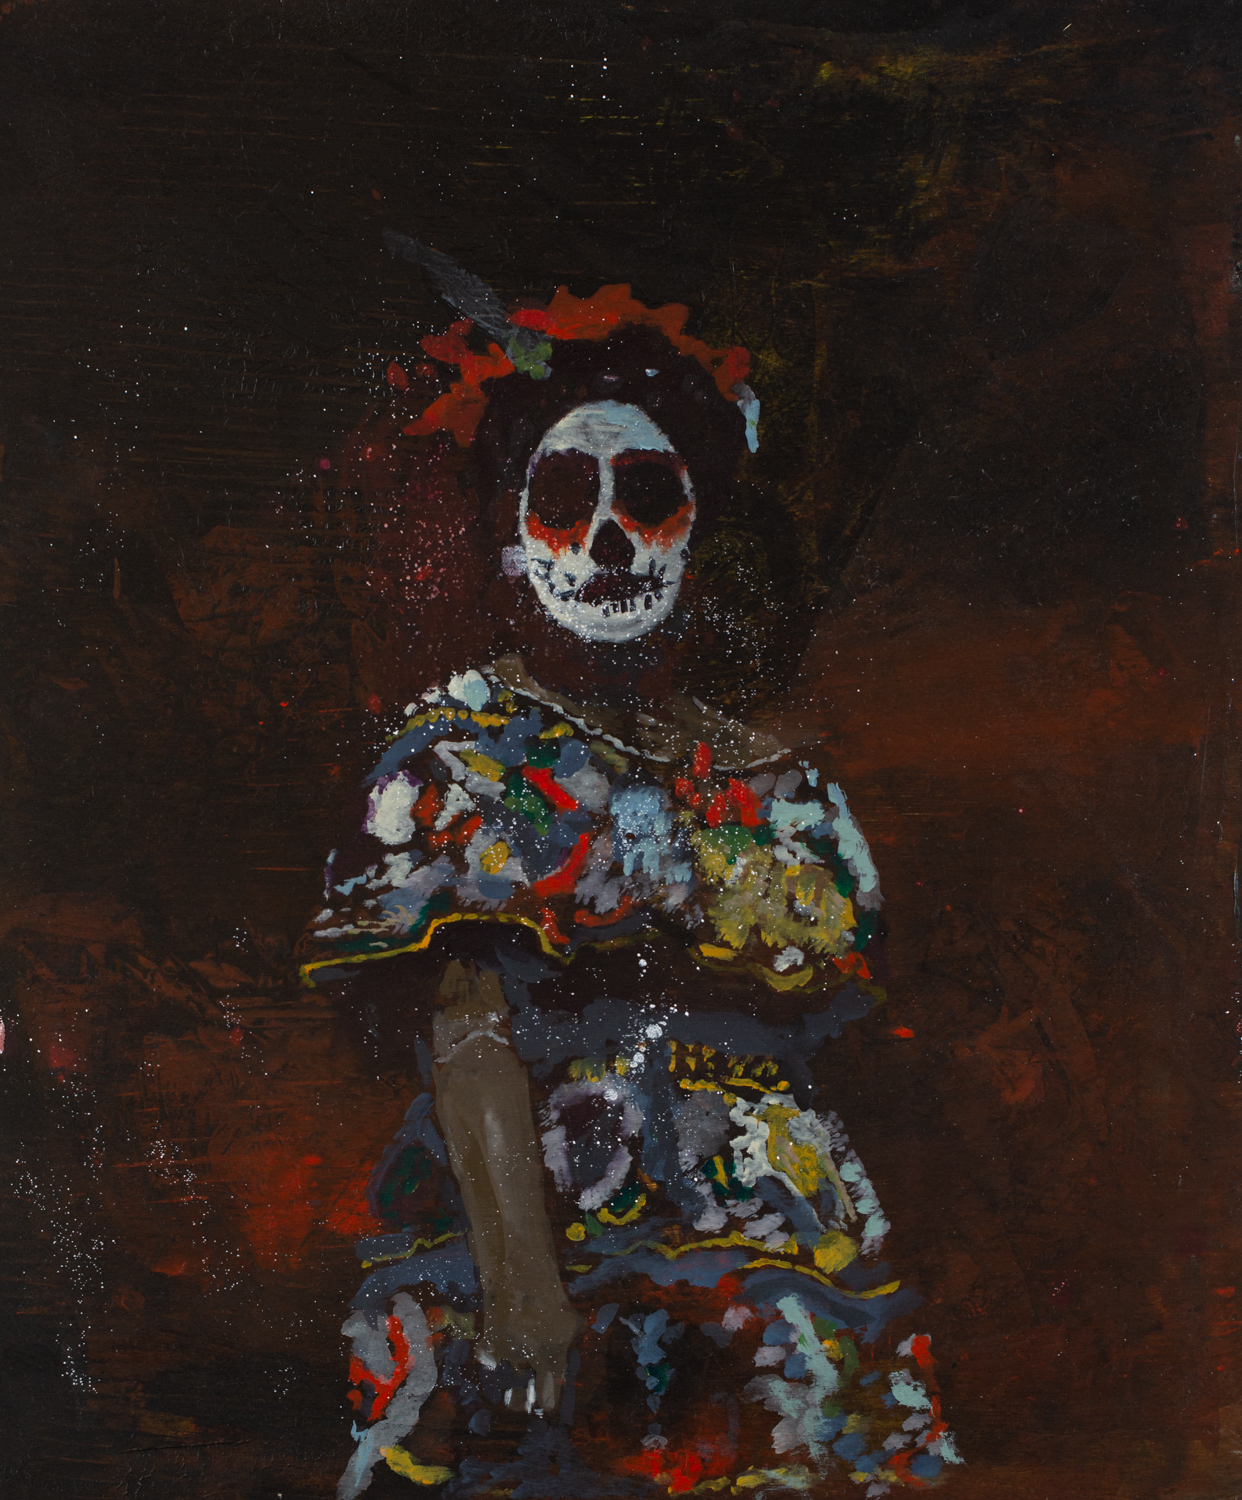 La Catrina   Acrylic pigments on Panel  20 x 24 Inches  2019